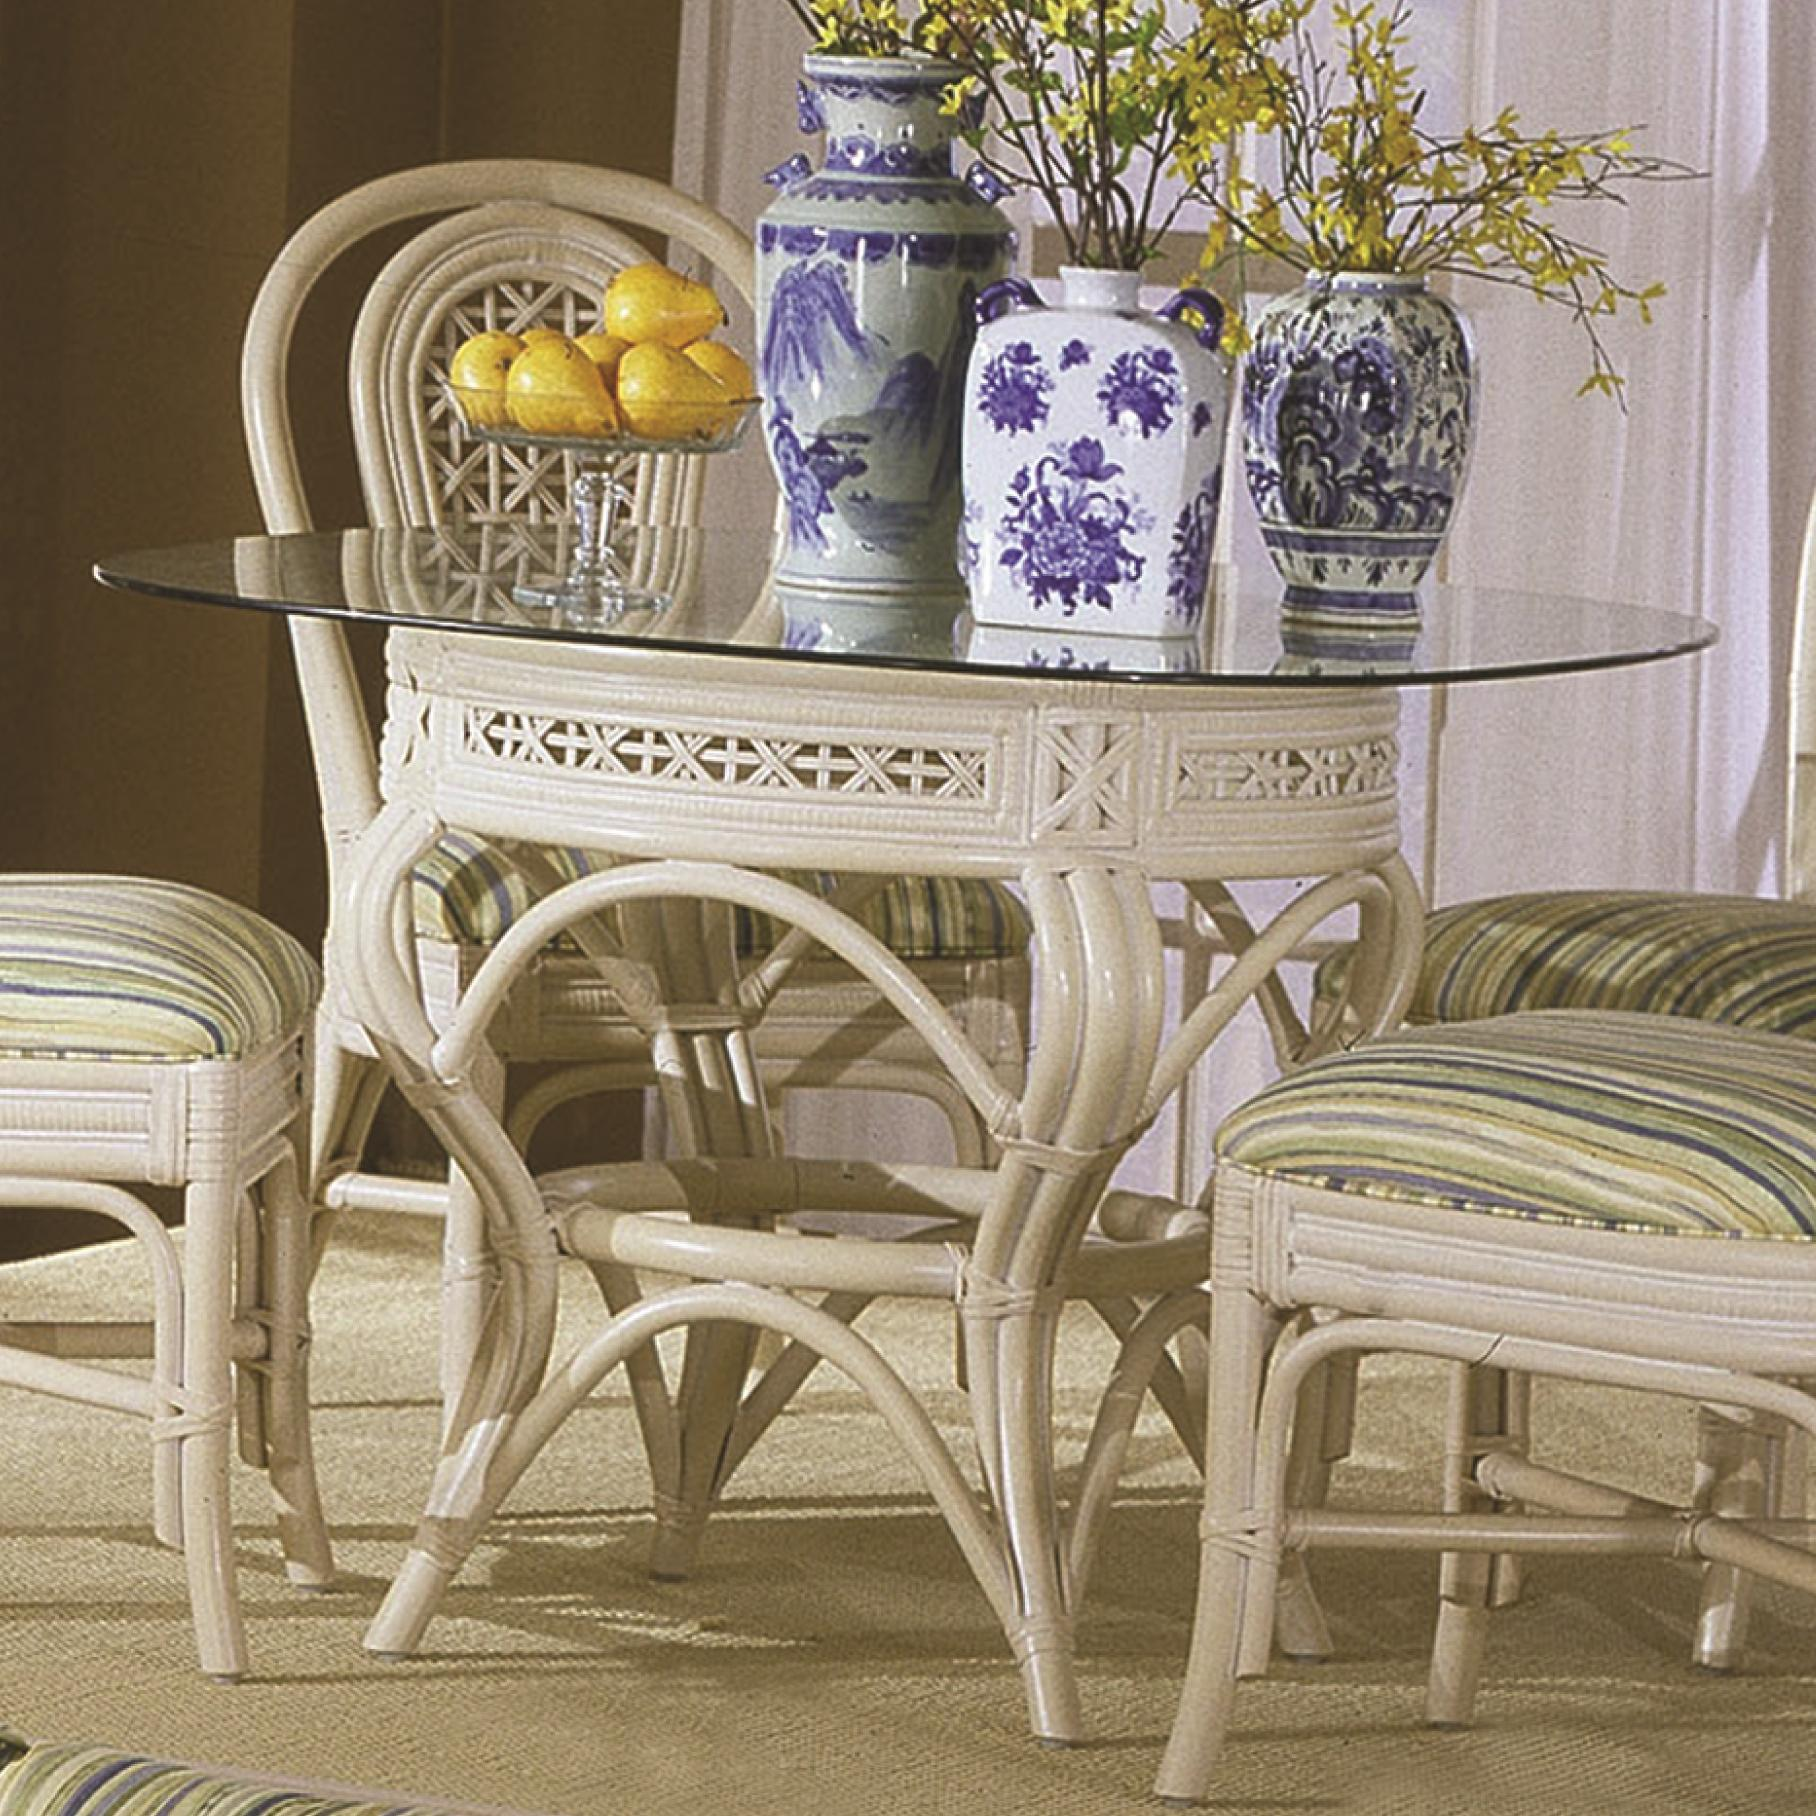 341 Collection Wicker Rattan Kitchen Table by Capris Furniture at Esprit Decor Home Furnishings